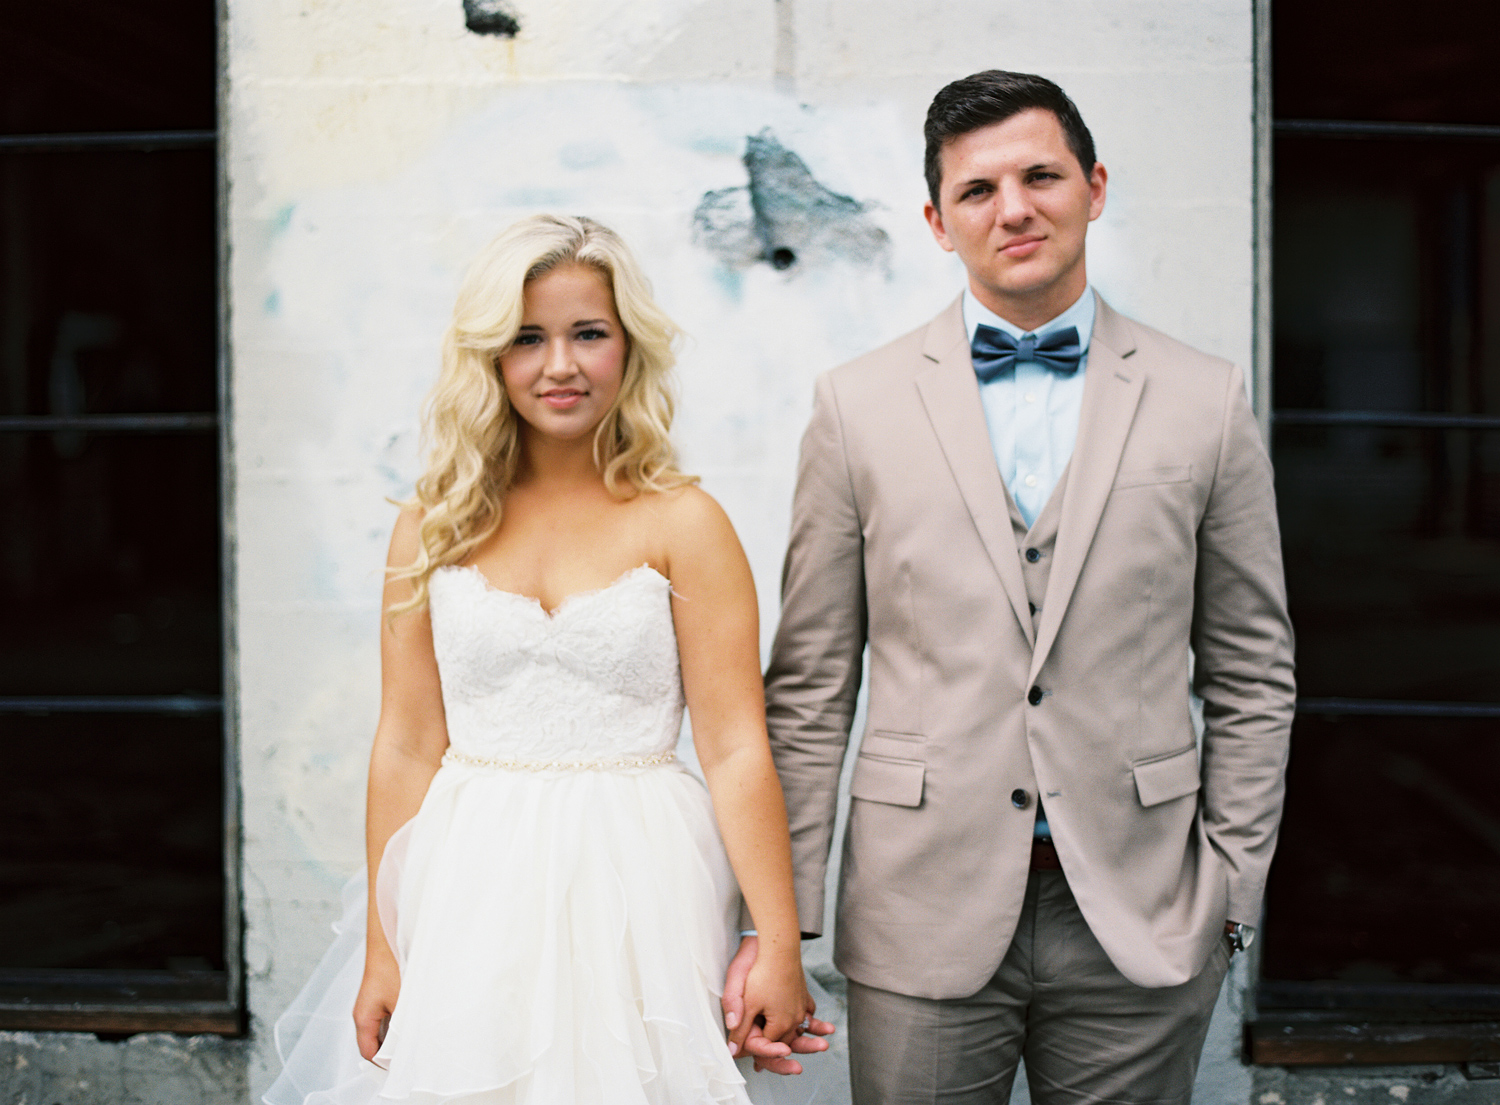 ryan-flynn-photography-best-wedding-photos-2014-0021.JPG